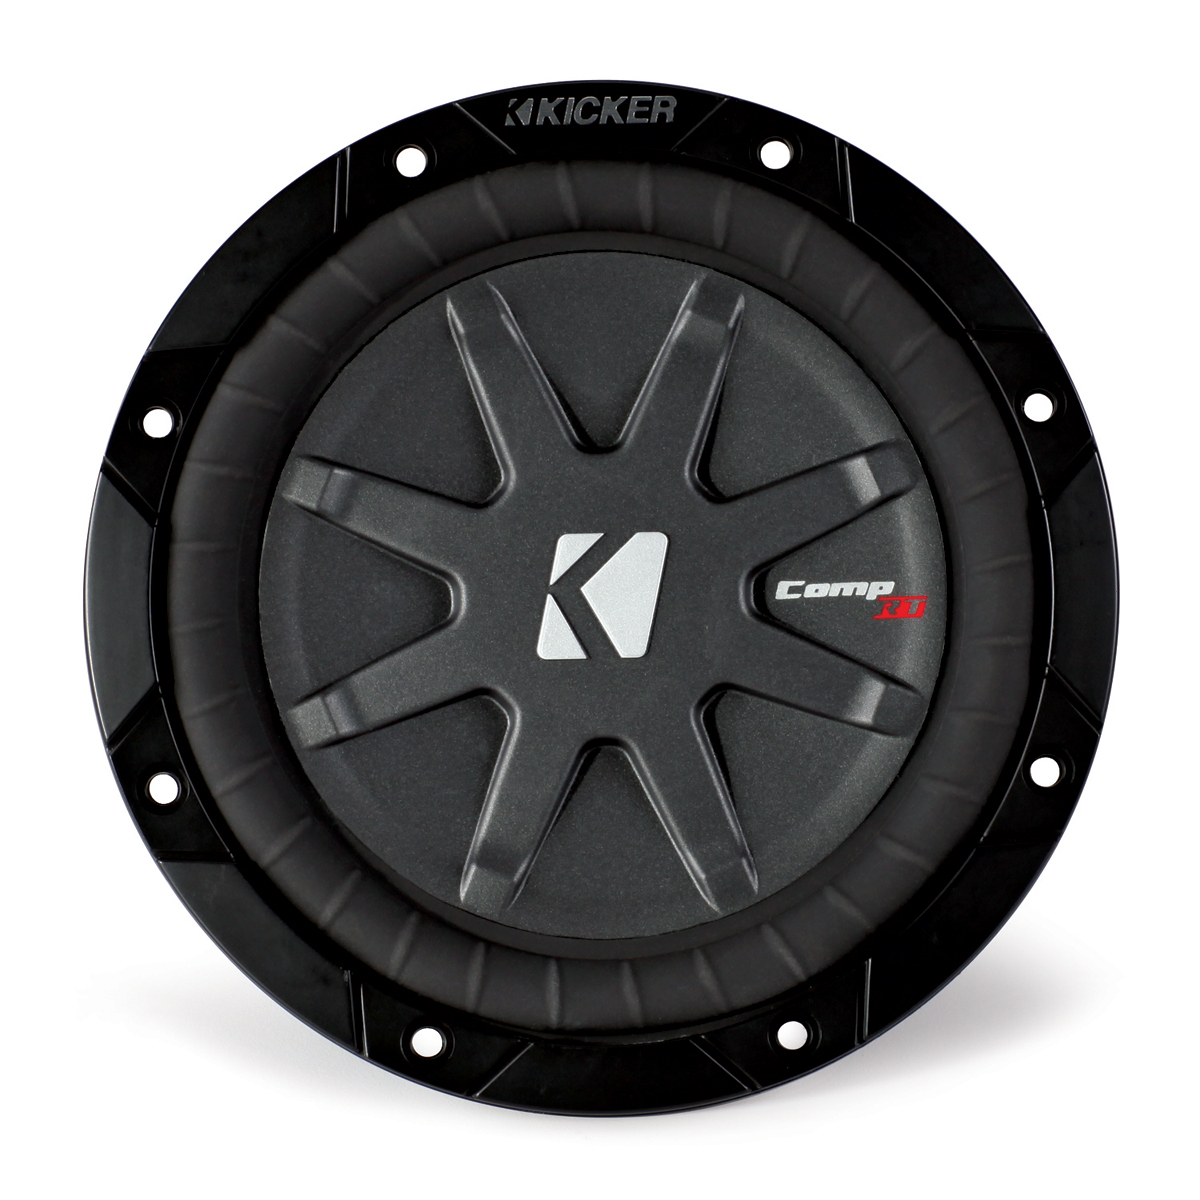 kicker l5 wiring diagram kicker subwoofer wiring diagram kicker l7 kicker cvr 12 wiring diagram eljac